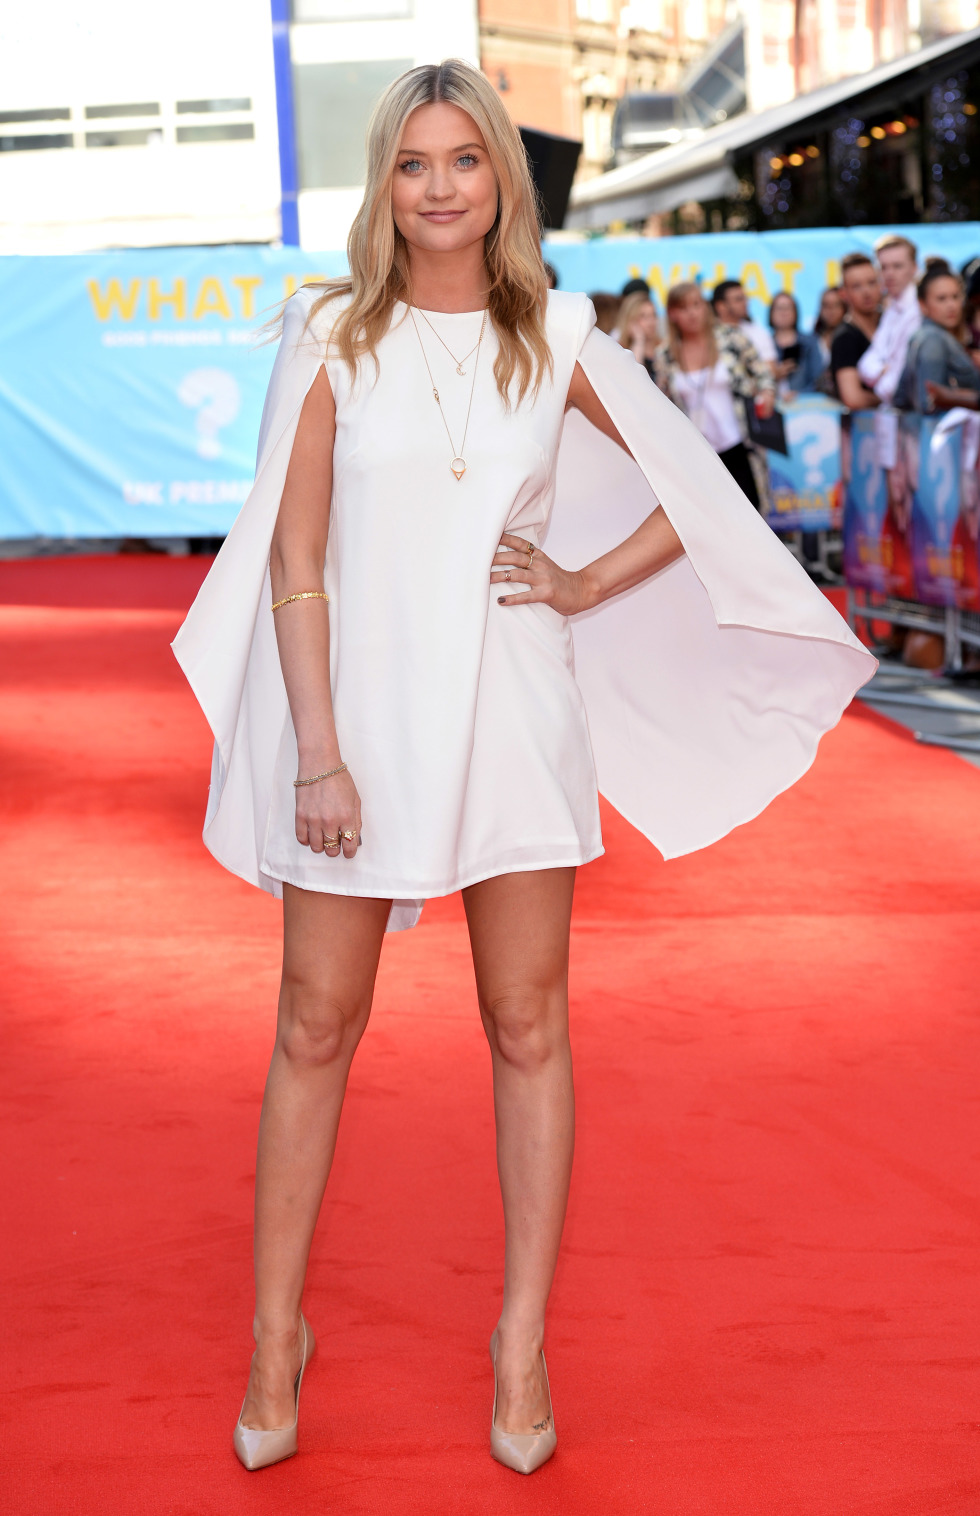 nrm_1407924584-laura_whitmore_wearing_cape_dress_-_premiere_-_celebrity_style_photos_-_fashion_-_cosmopolitancouk